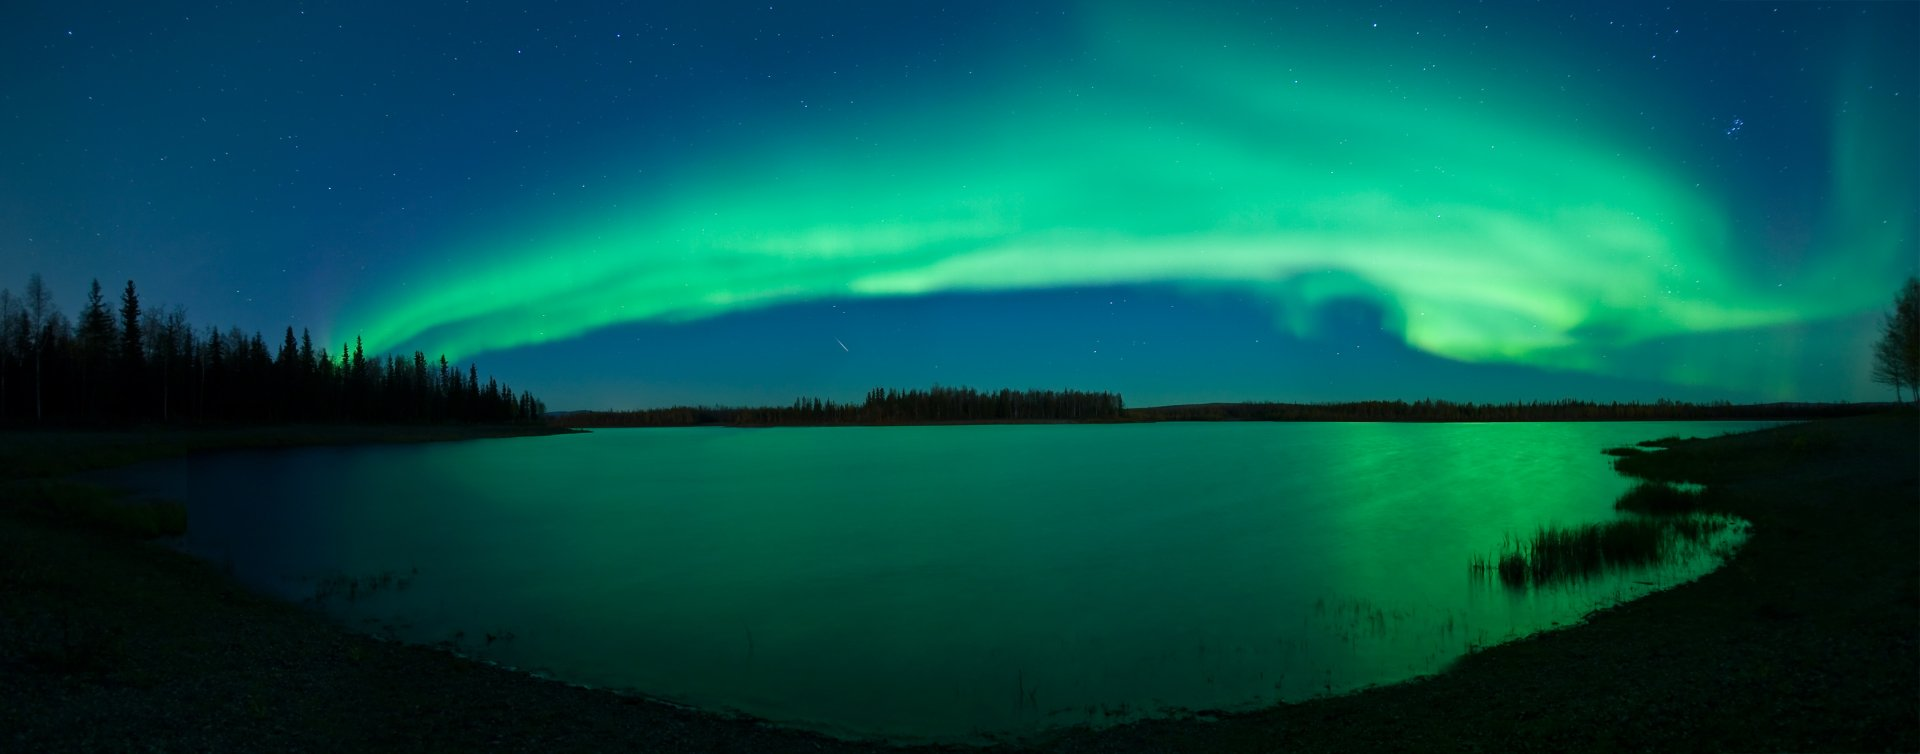 Multi Monitor - Erde/Natur  Aurora Borealis Himmel Night Wallpaper